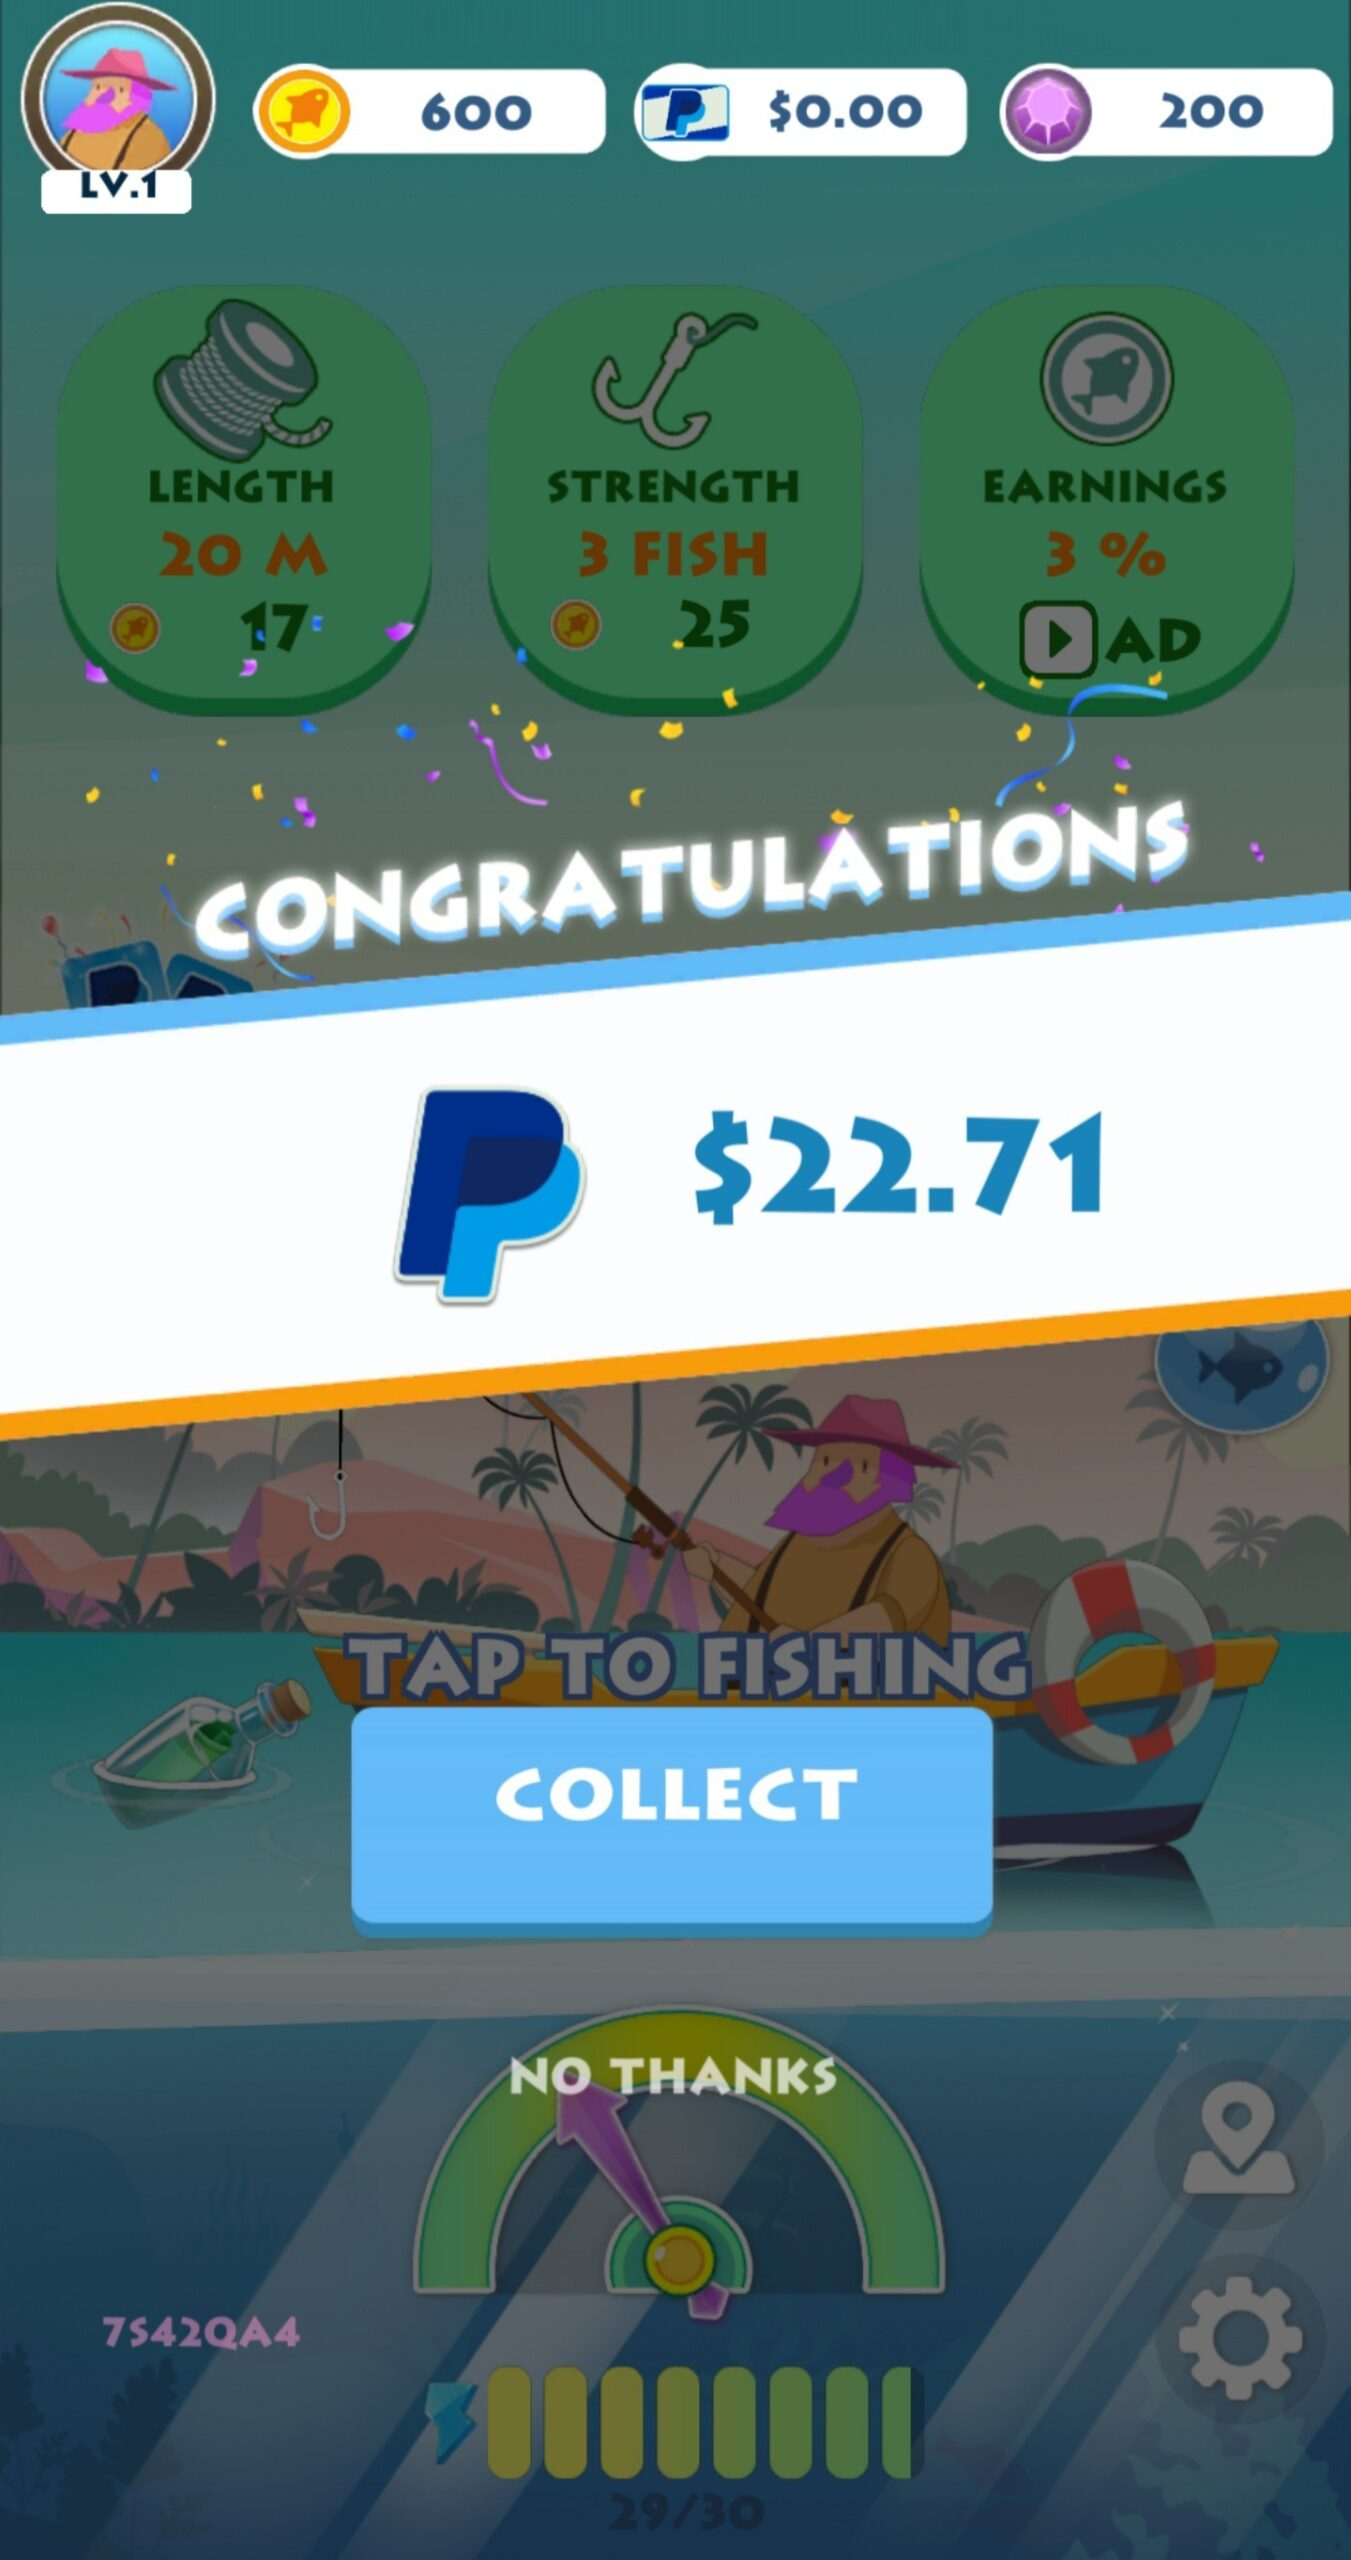 First Relax Fishing Payout